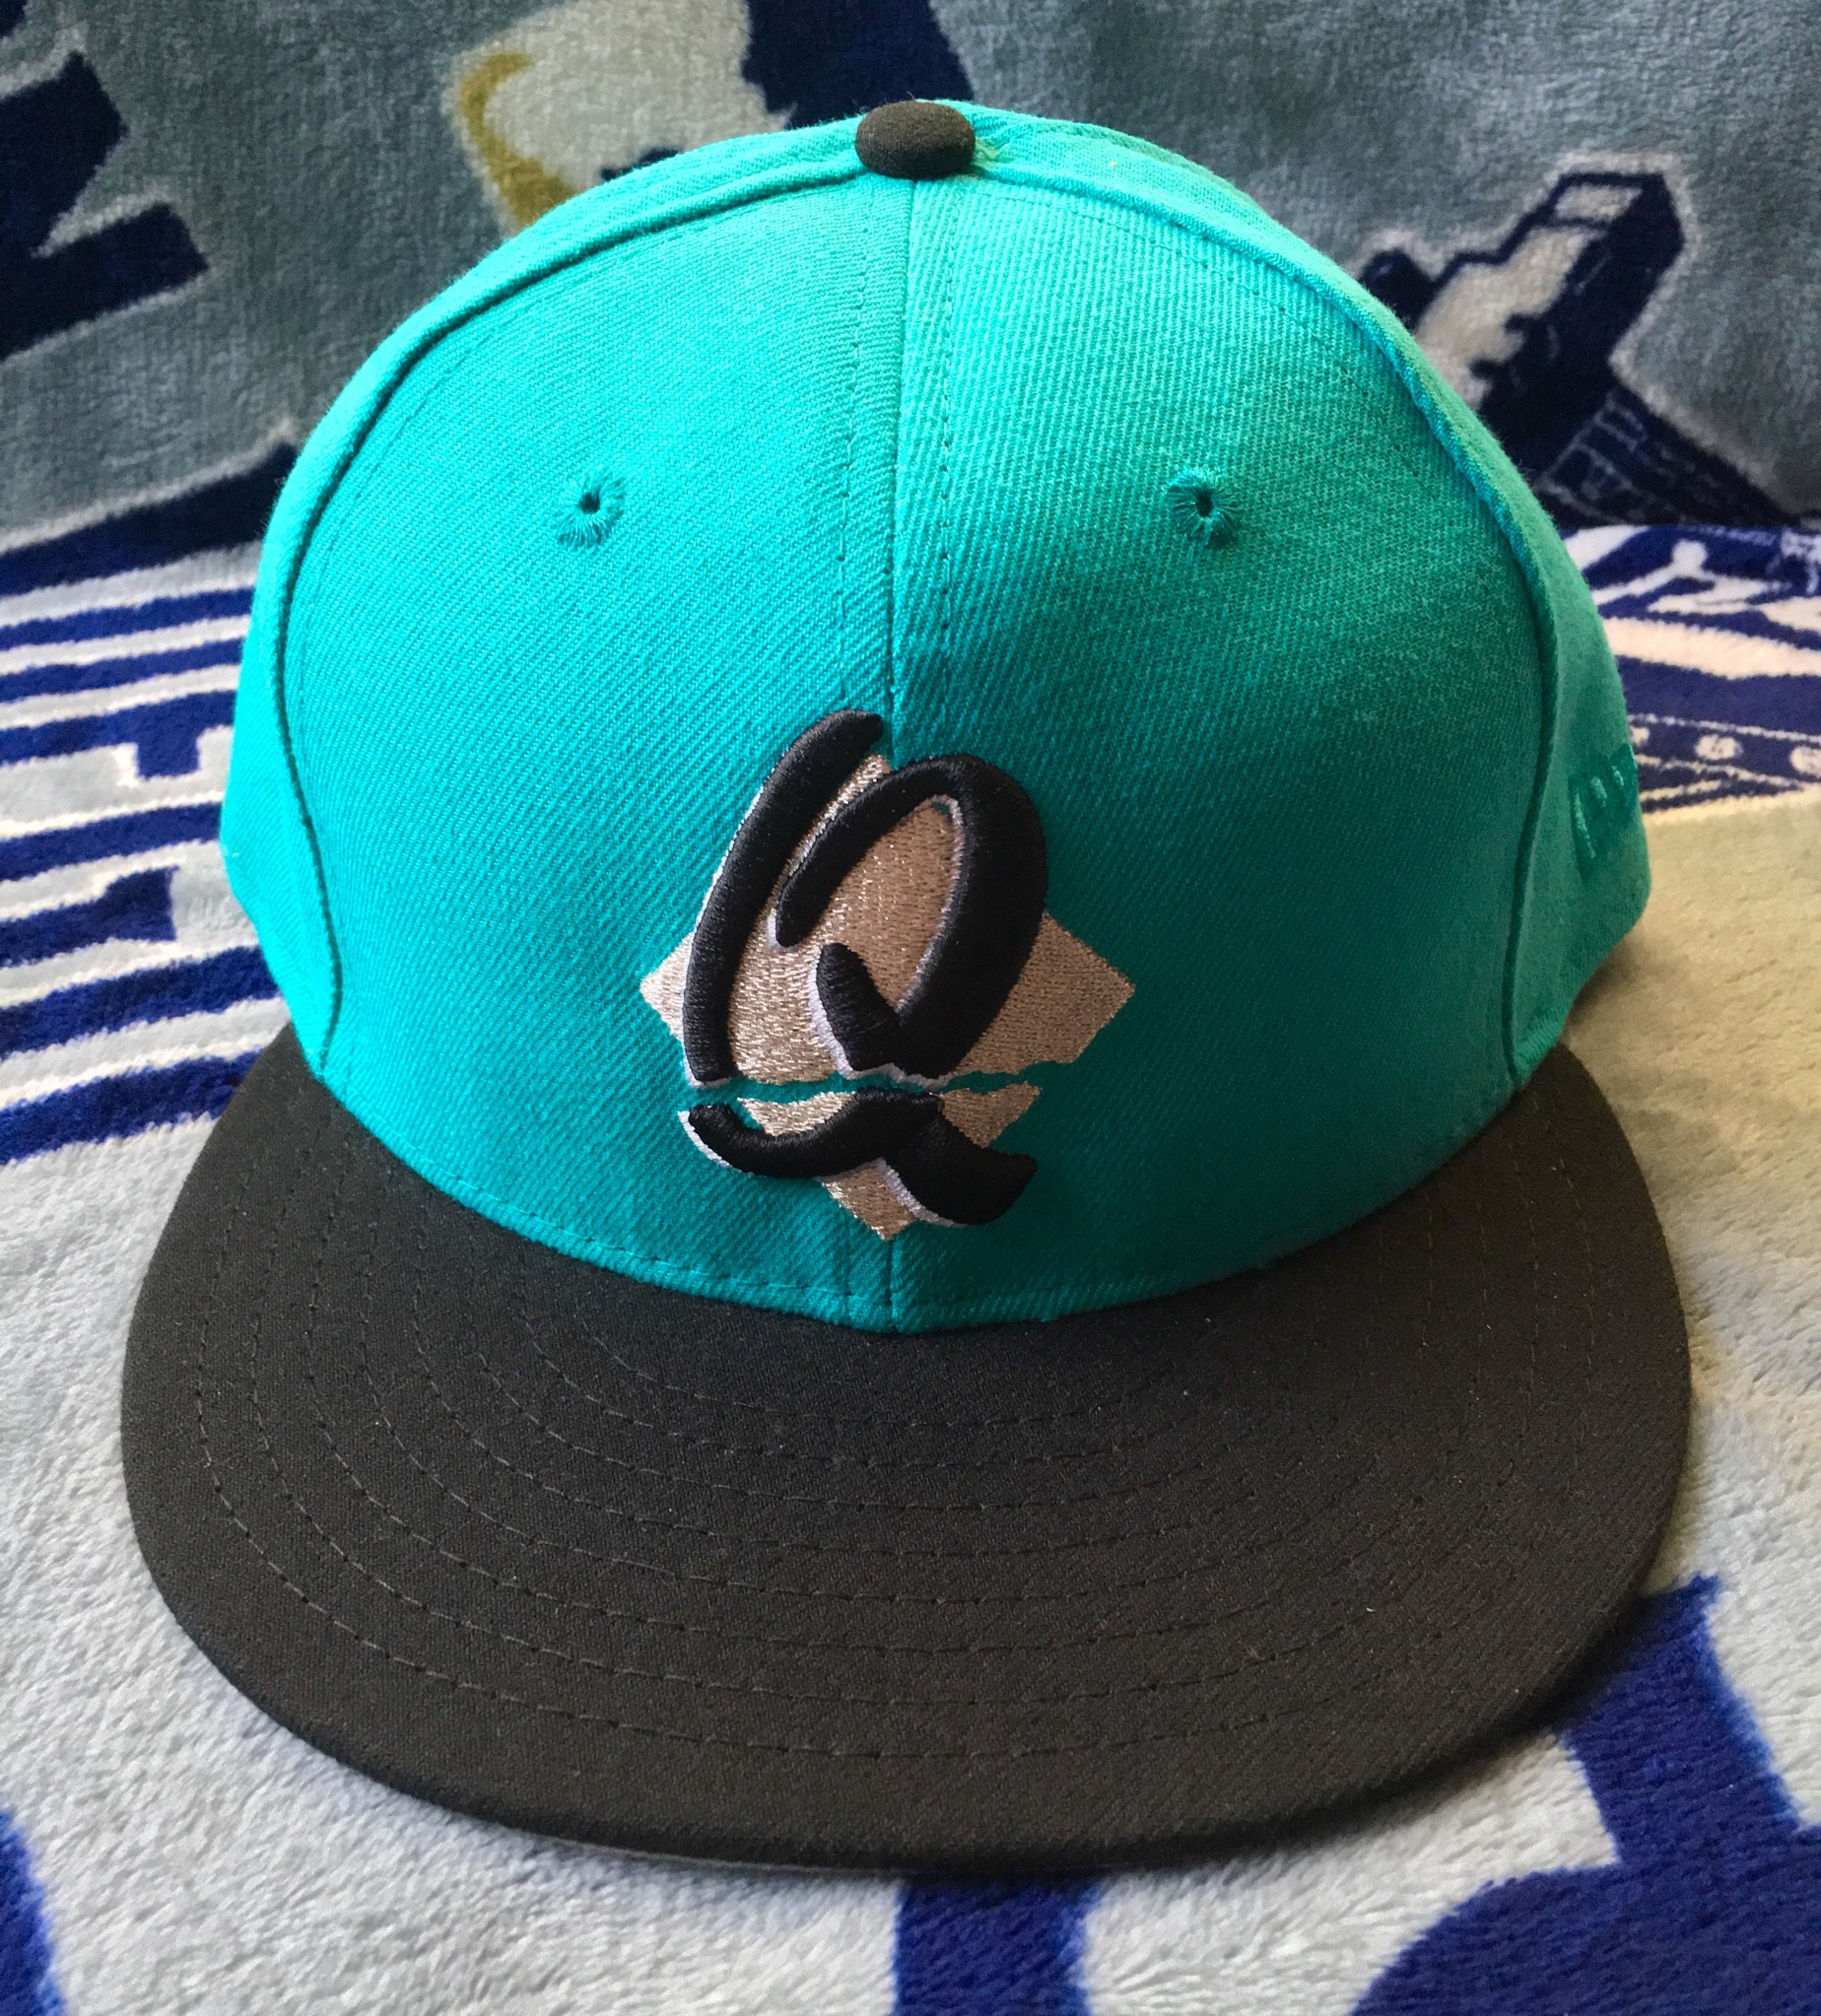 2b450641e1f8af Another reissue from the Minor League archives thanks to Hat Club (one of  the finest purveyors of vintage MLB and MiLB remakes in my opinion) is a  blast ...